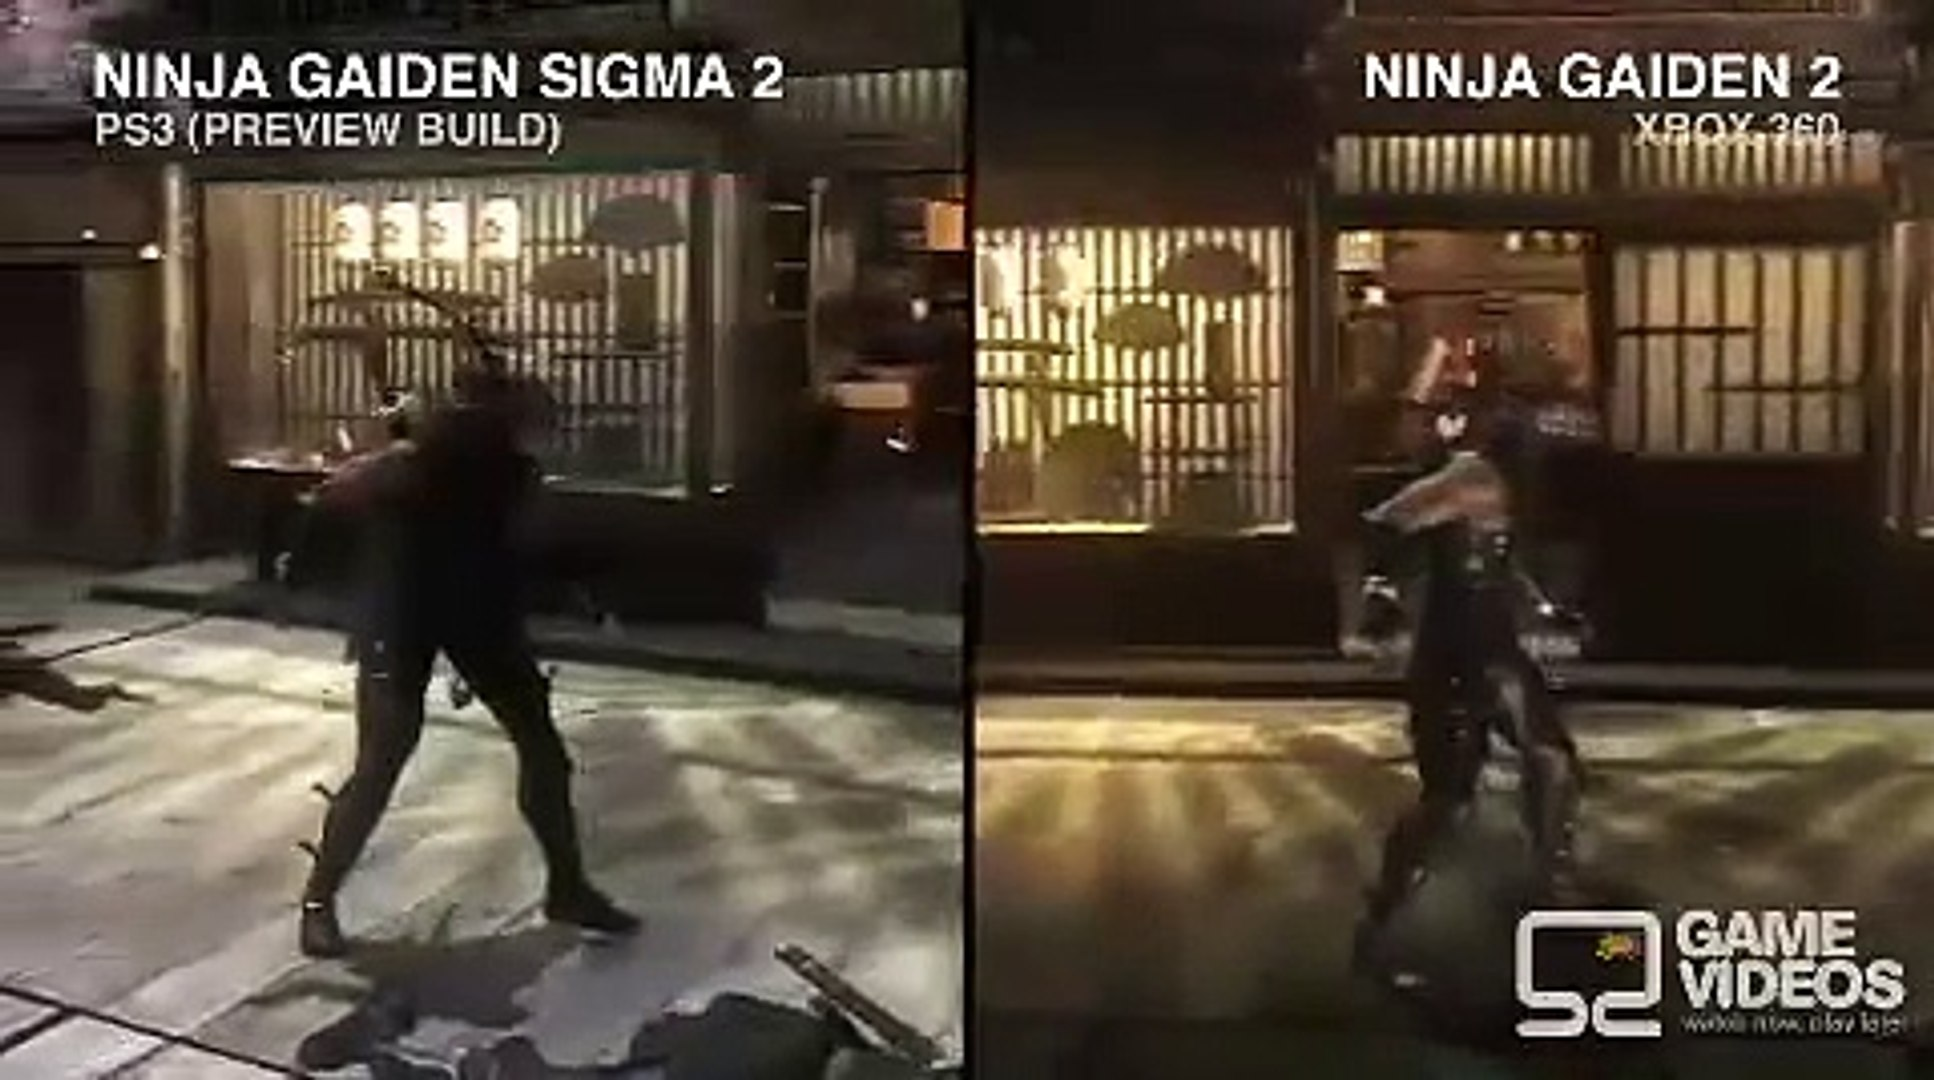 Ninja Gaiden Sigma 2 Ps3 Vs Ninja Gaiden 2 Xbox 360 Video